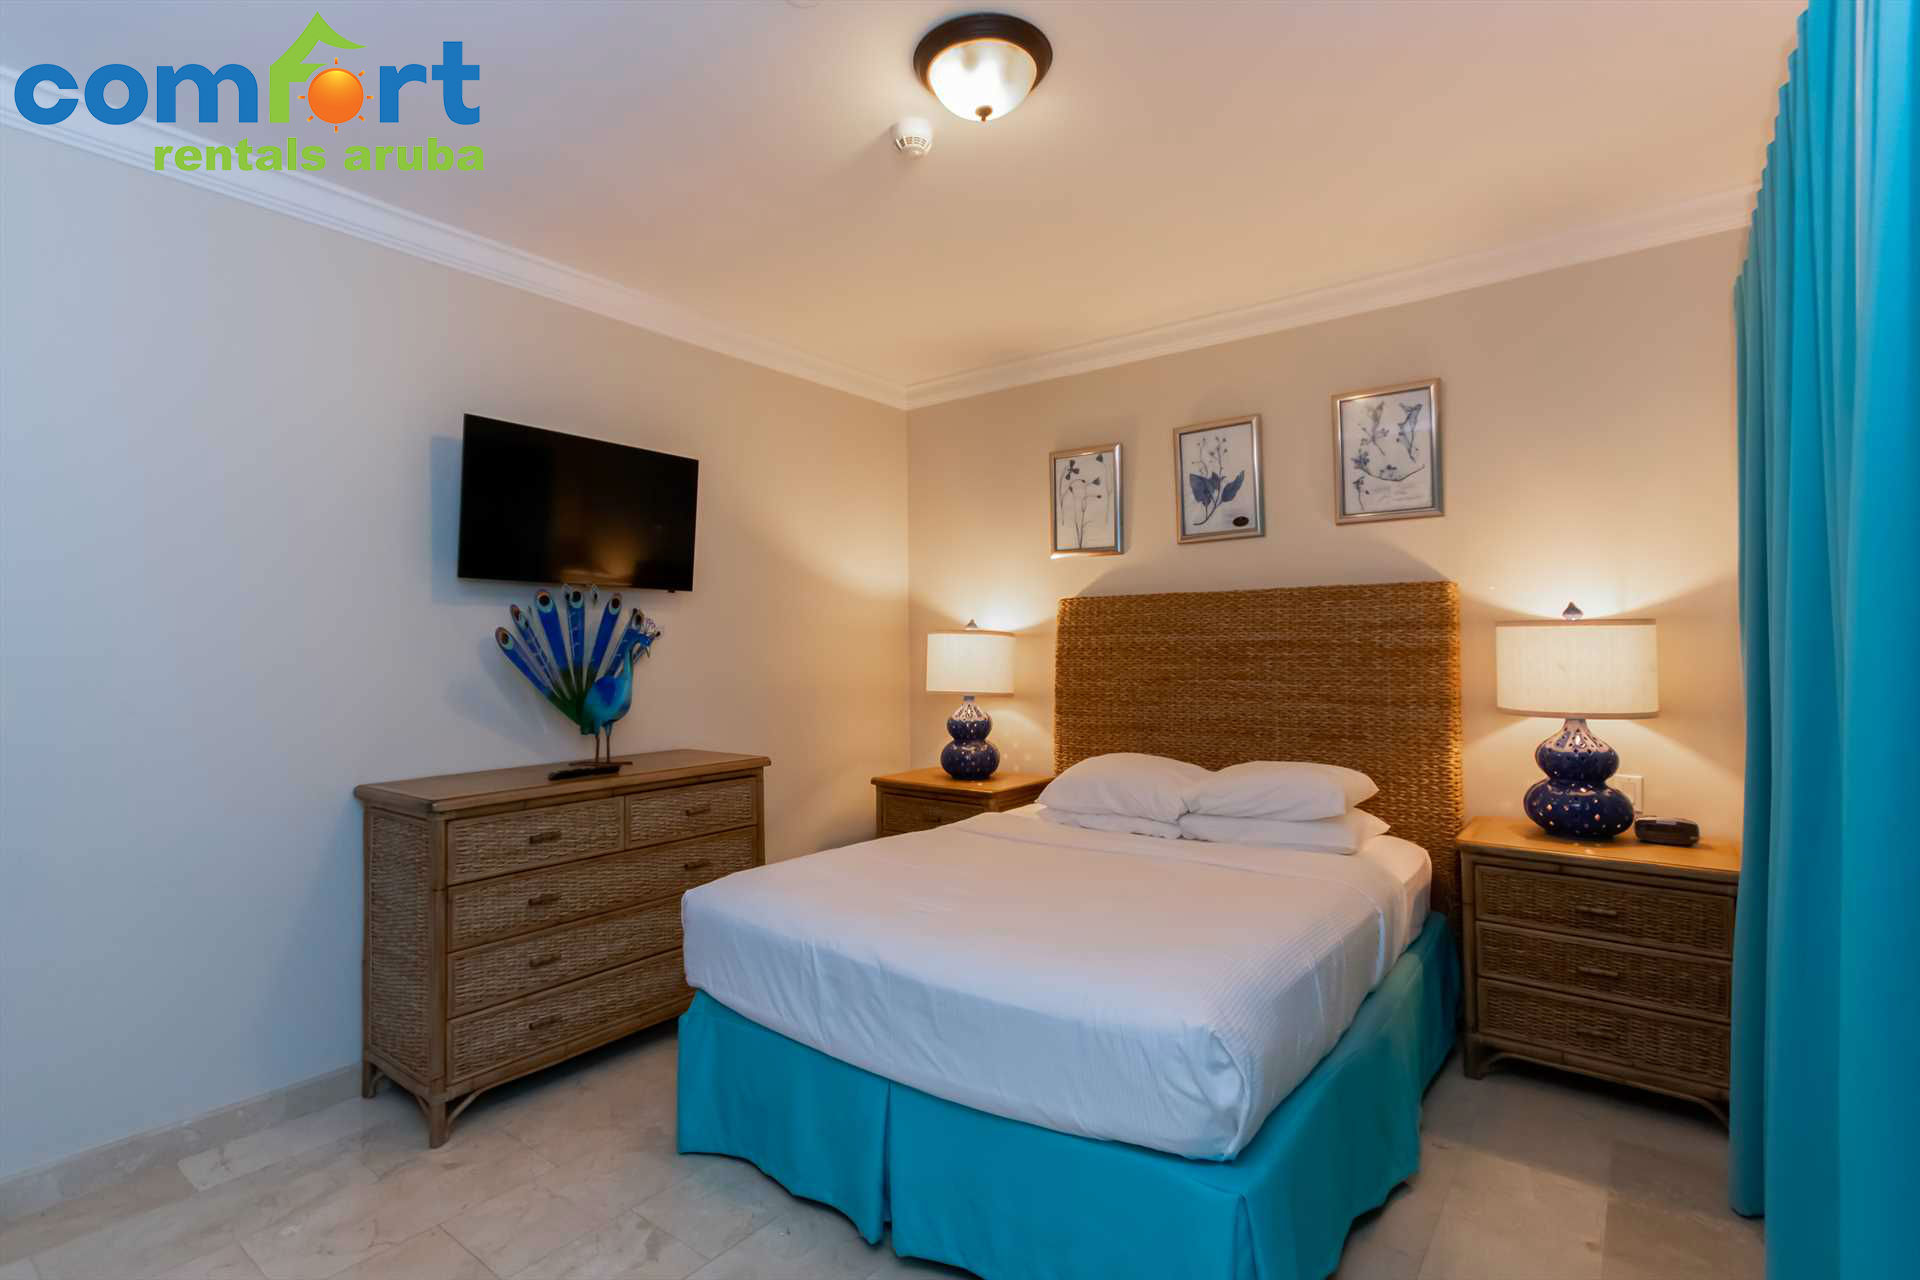 Second bedroom with a beautiful combination of tropical colors and a TV